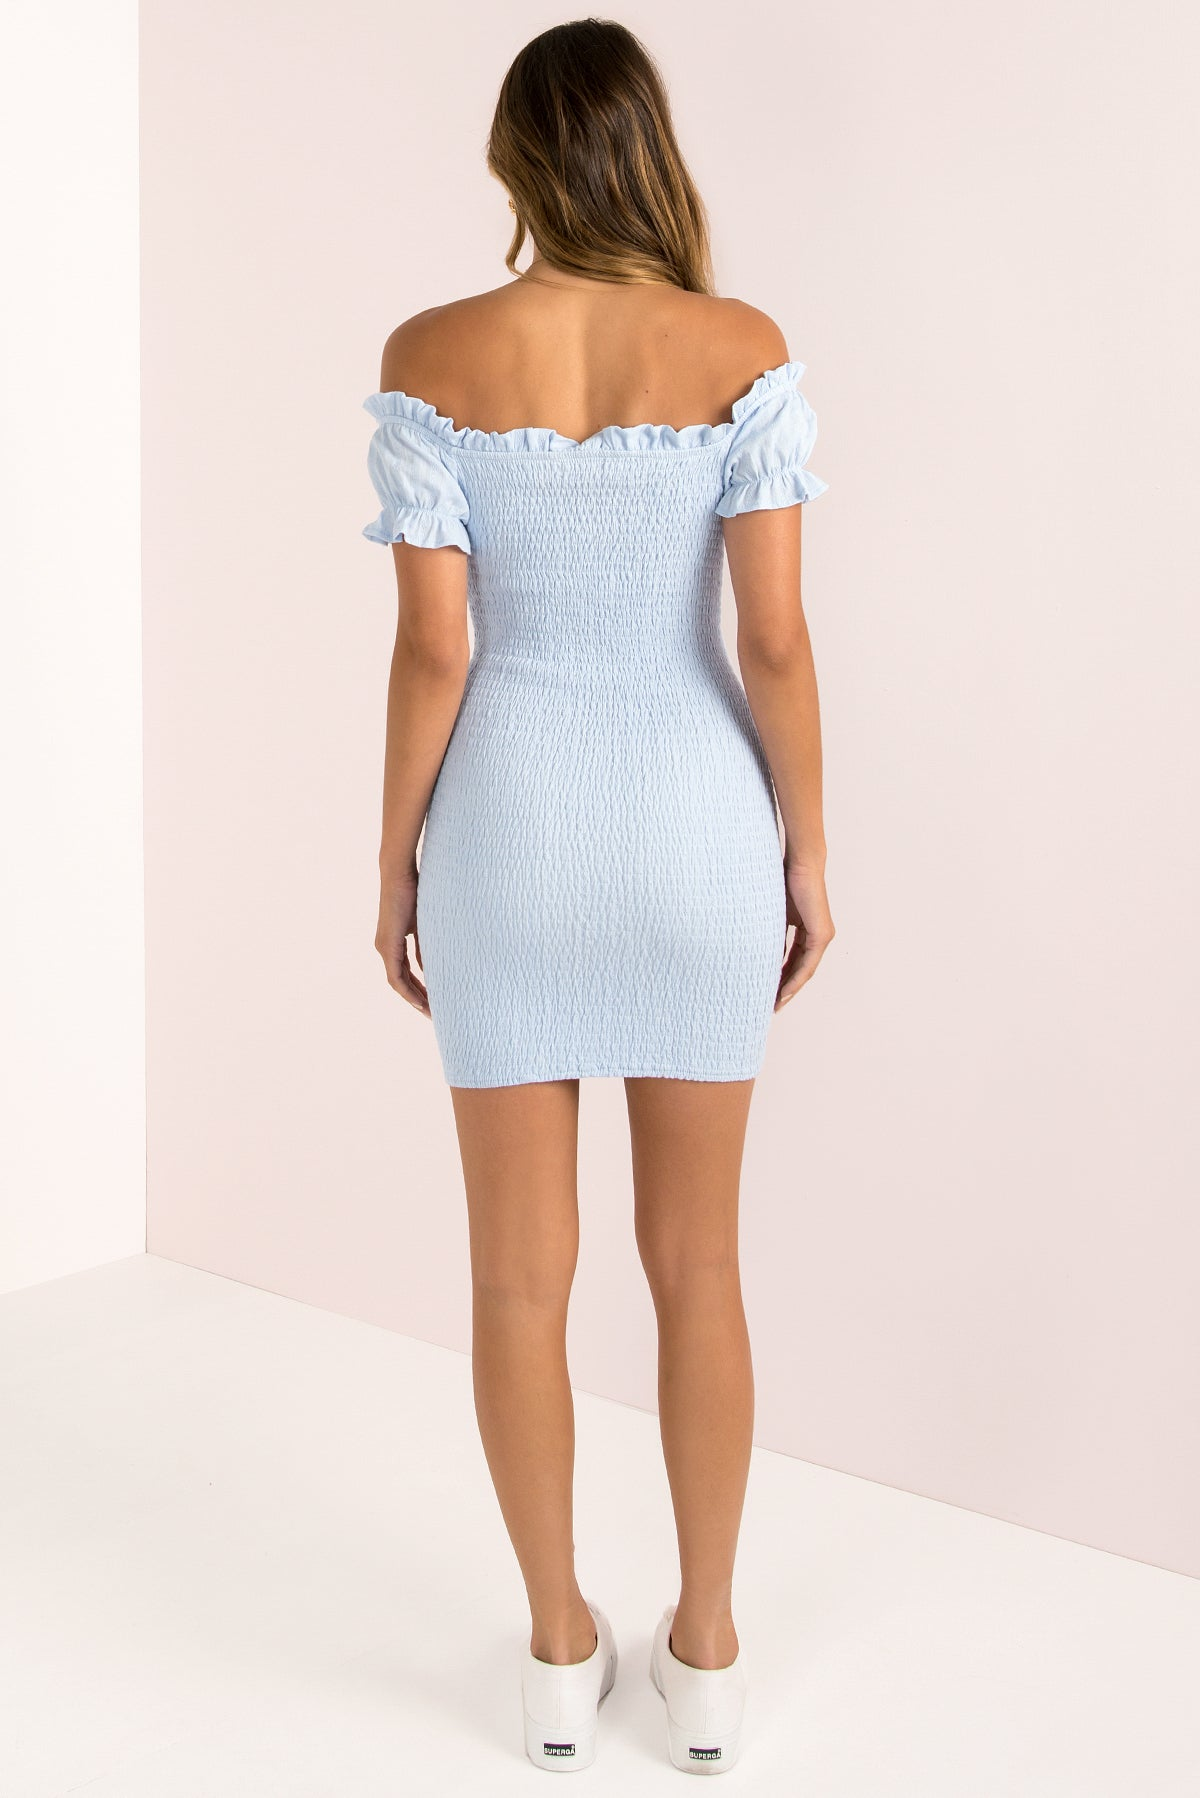 Belle Dress / Blue